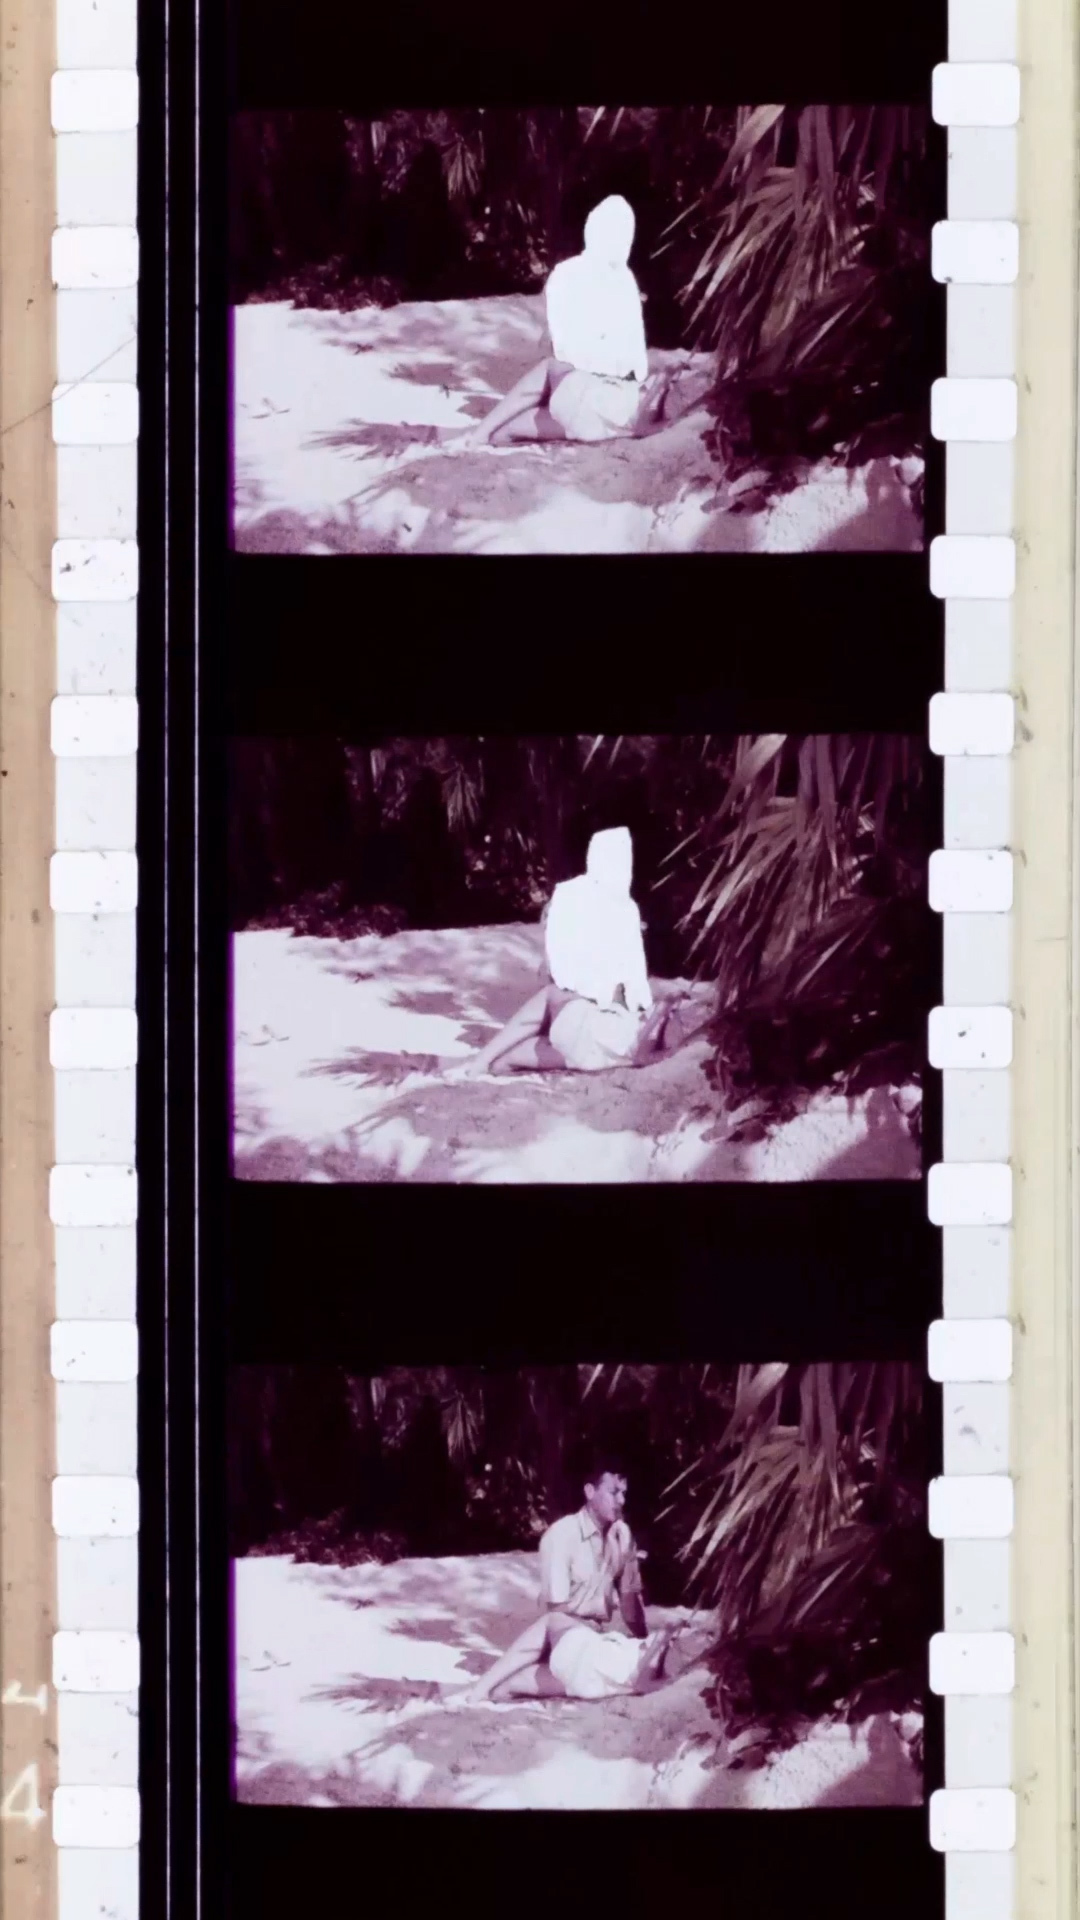 Christopher Spurgin, Everybody These Days, (video still), 35mm to digital video, 2019